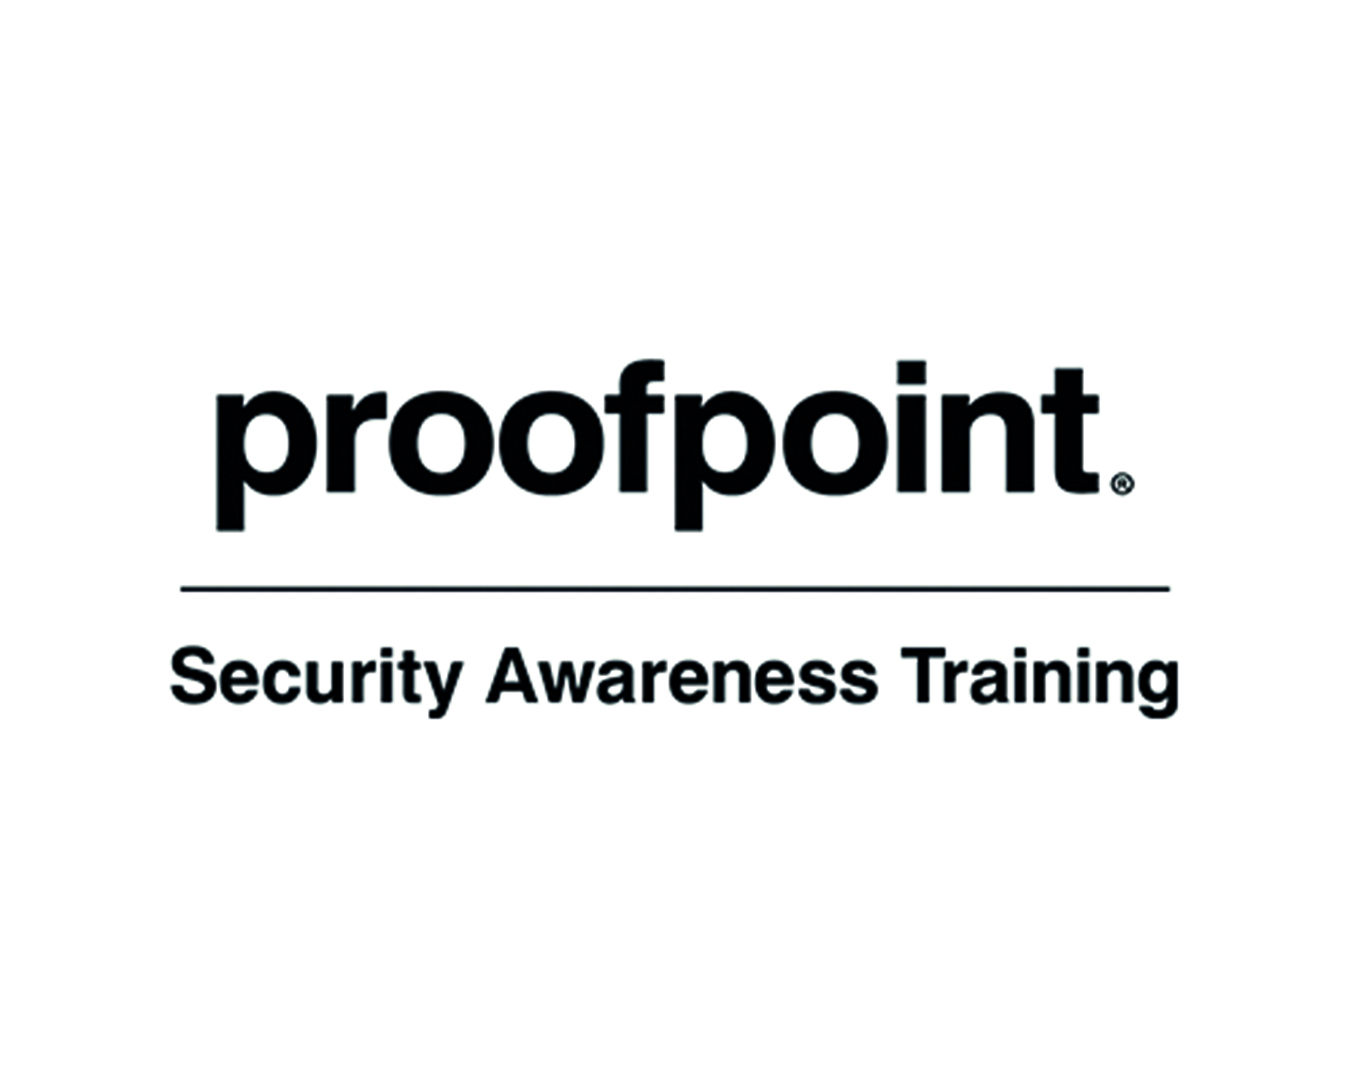 Product picture of Proofpoint Security Awareness Training